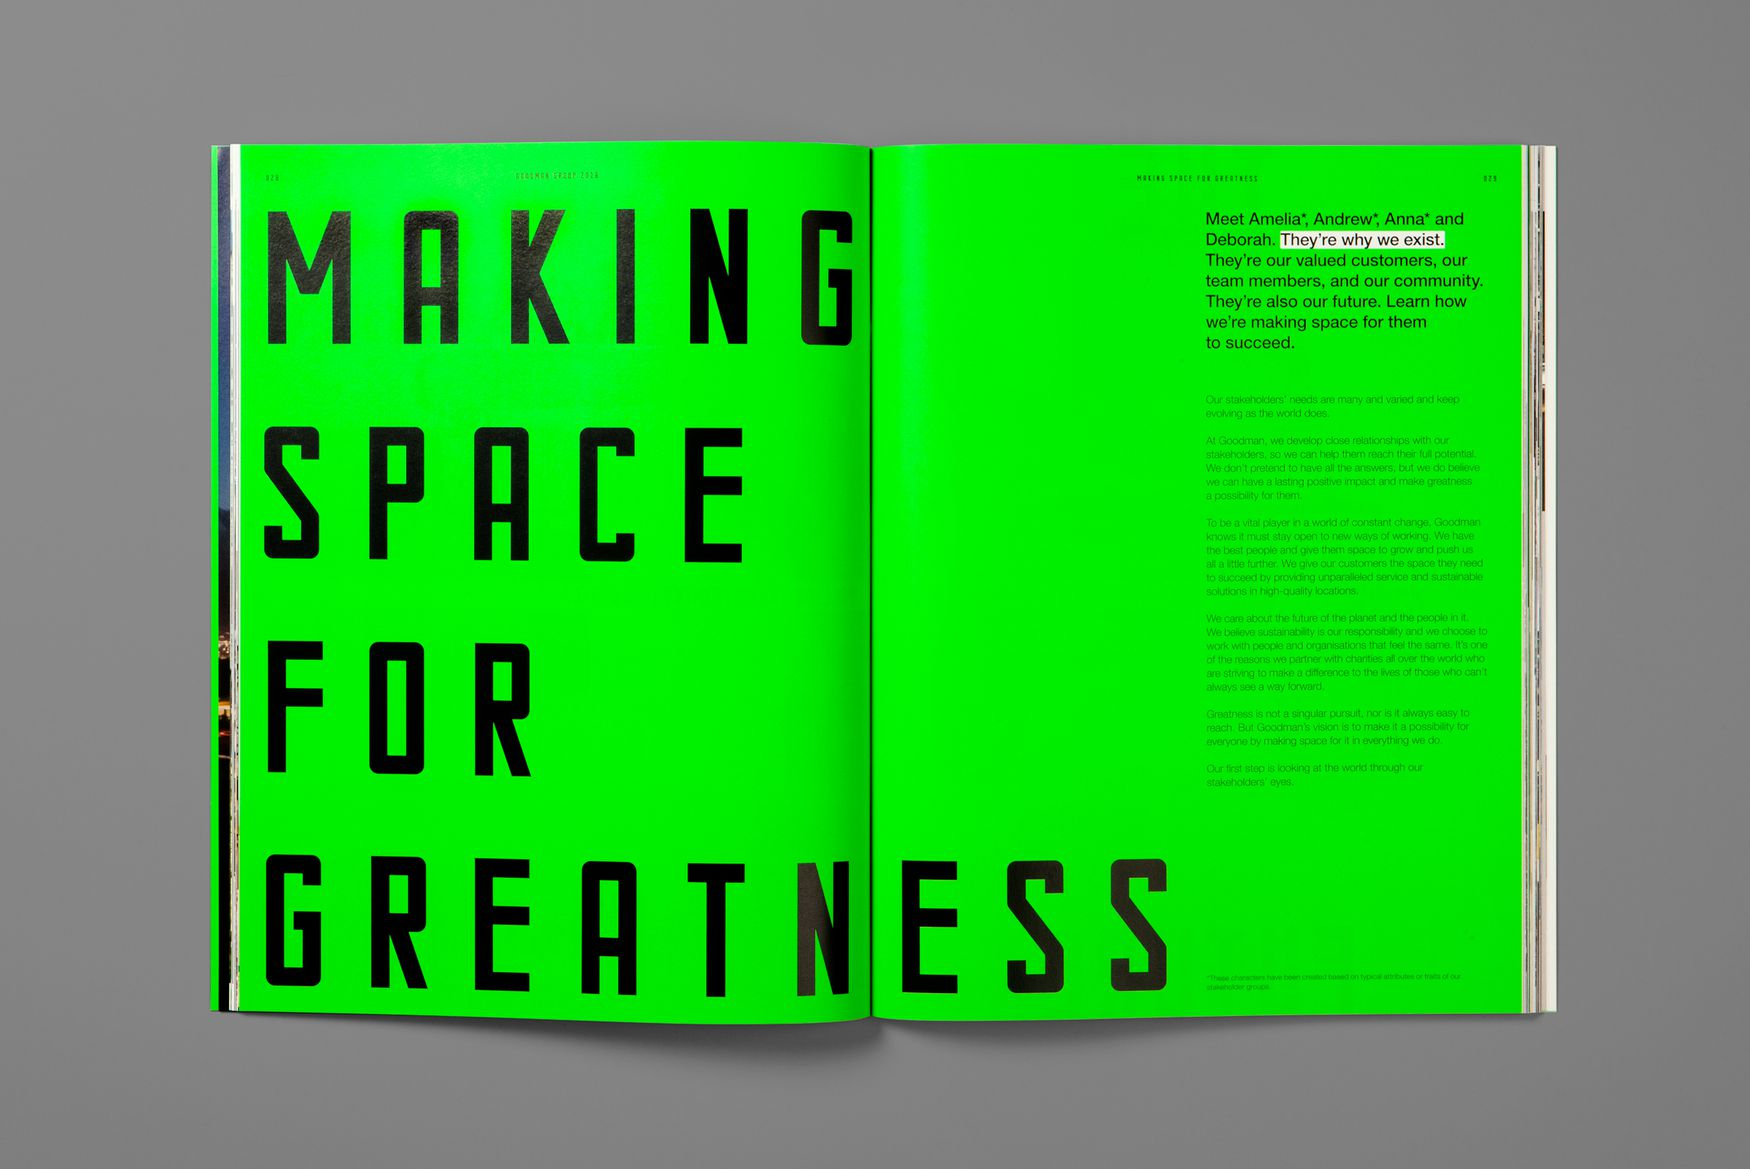 Making Space for Greatness